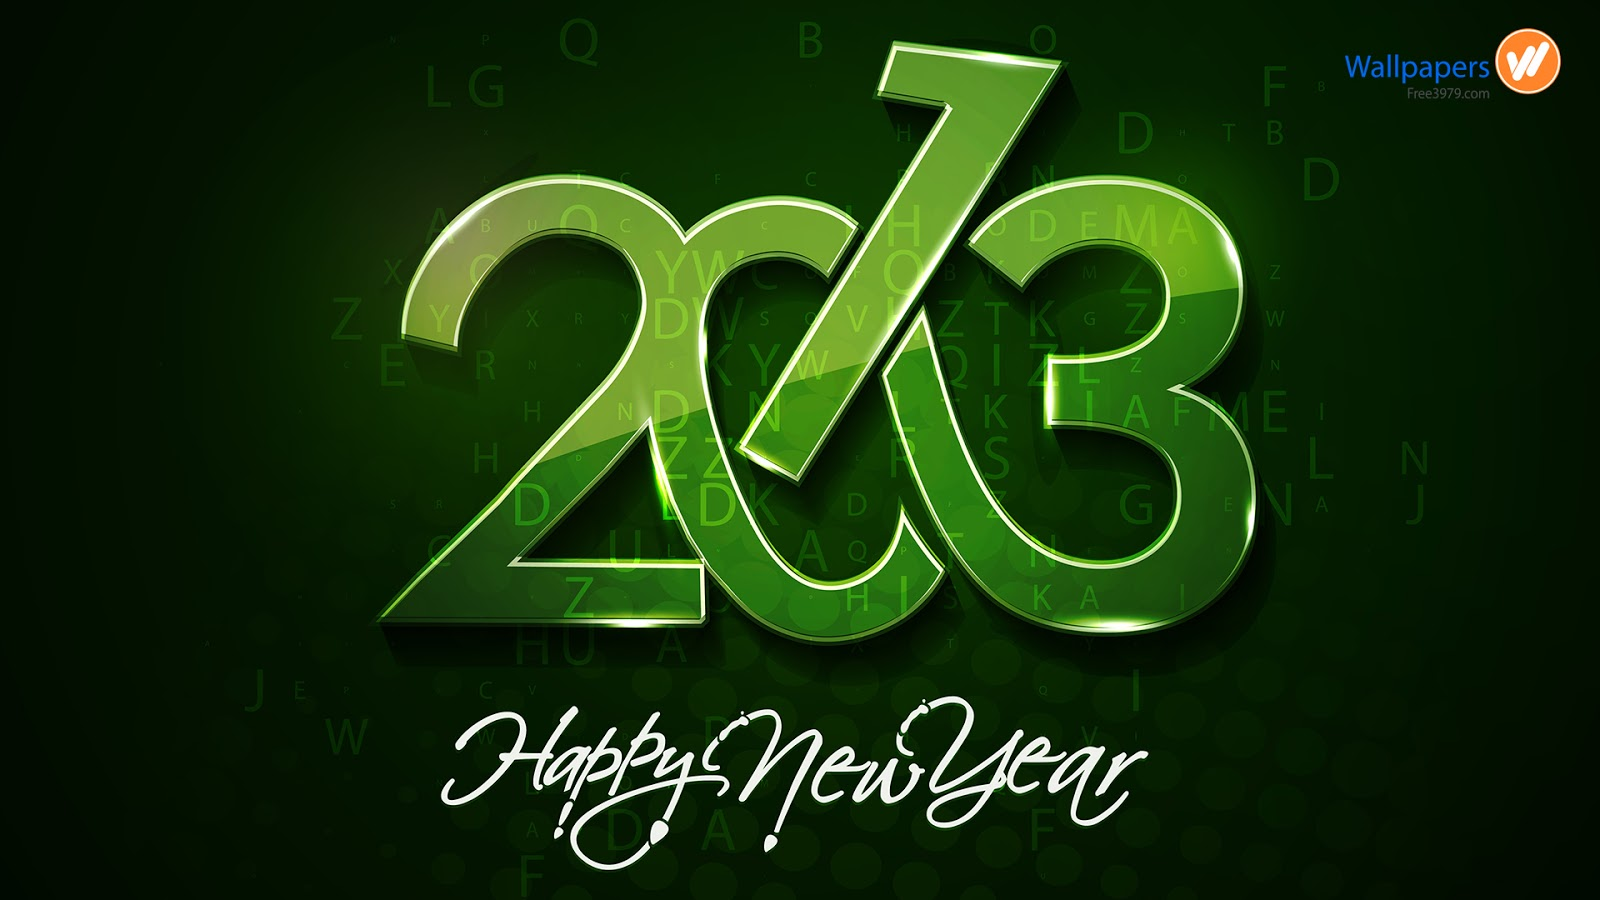 Amazing New Year Wishes Wallpapers: Wallpapers-Wallpaper: 20+ Amazing Happy New Year 2013